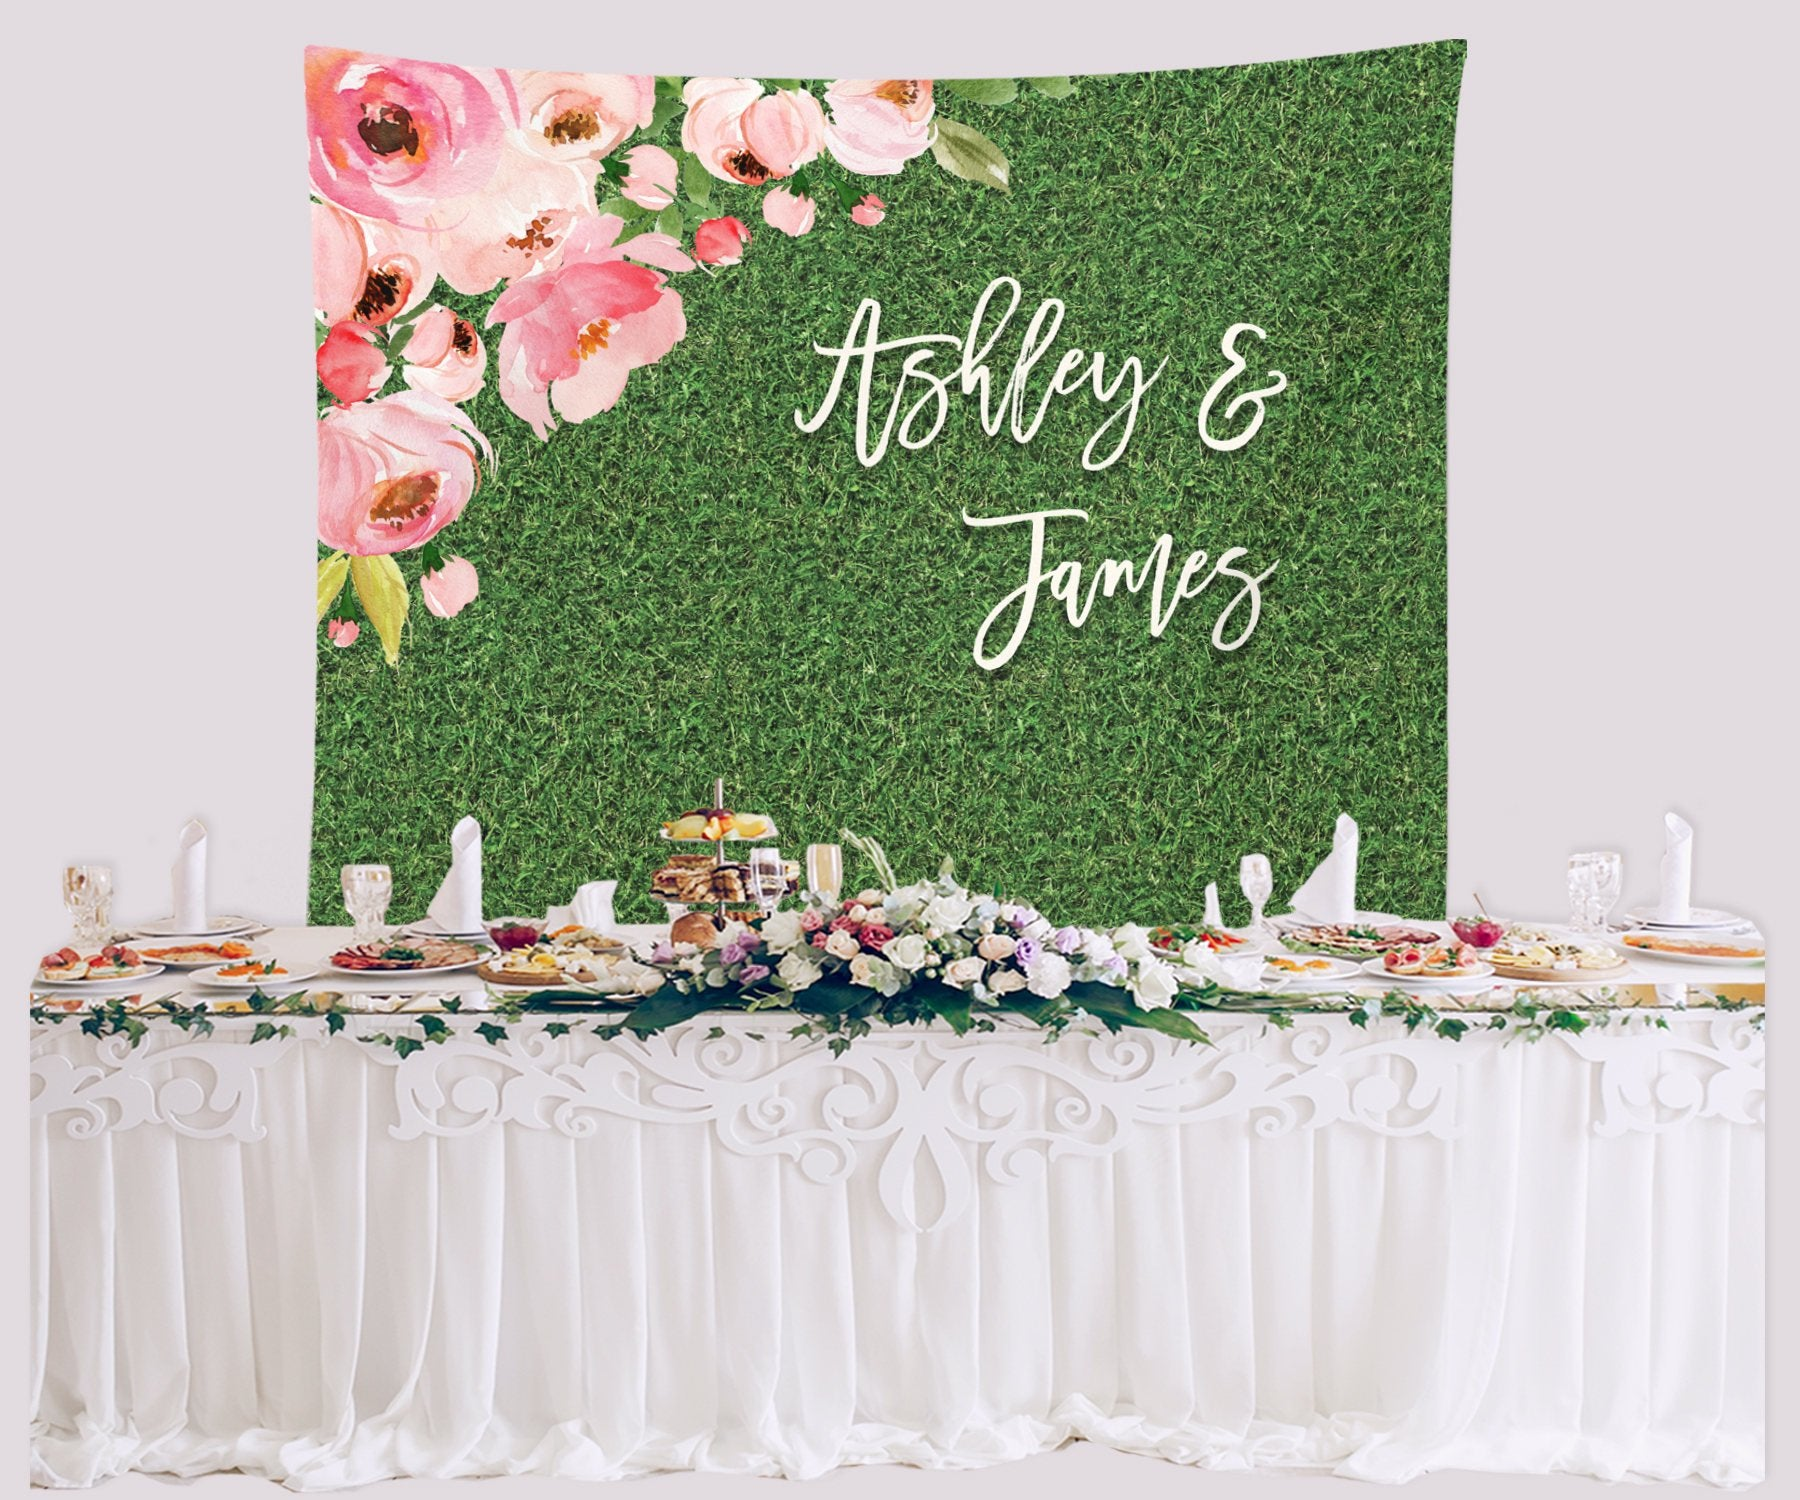 Rustic Wedding Backdrop Floral Wedding Grass Backdrop Personalized